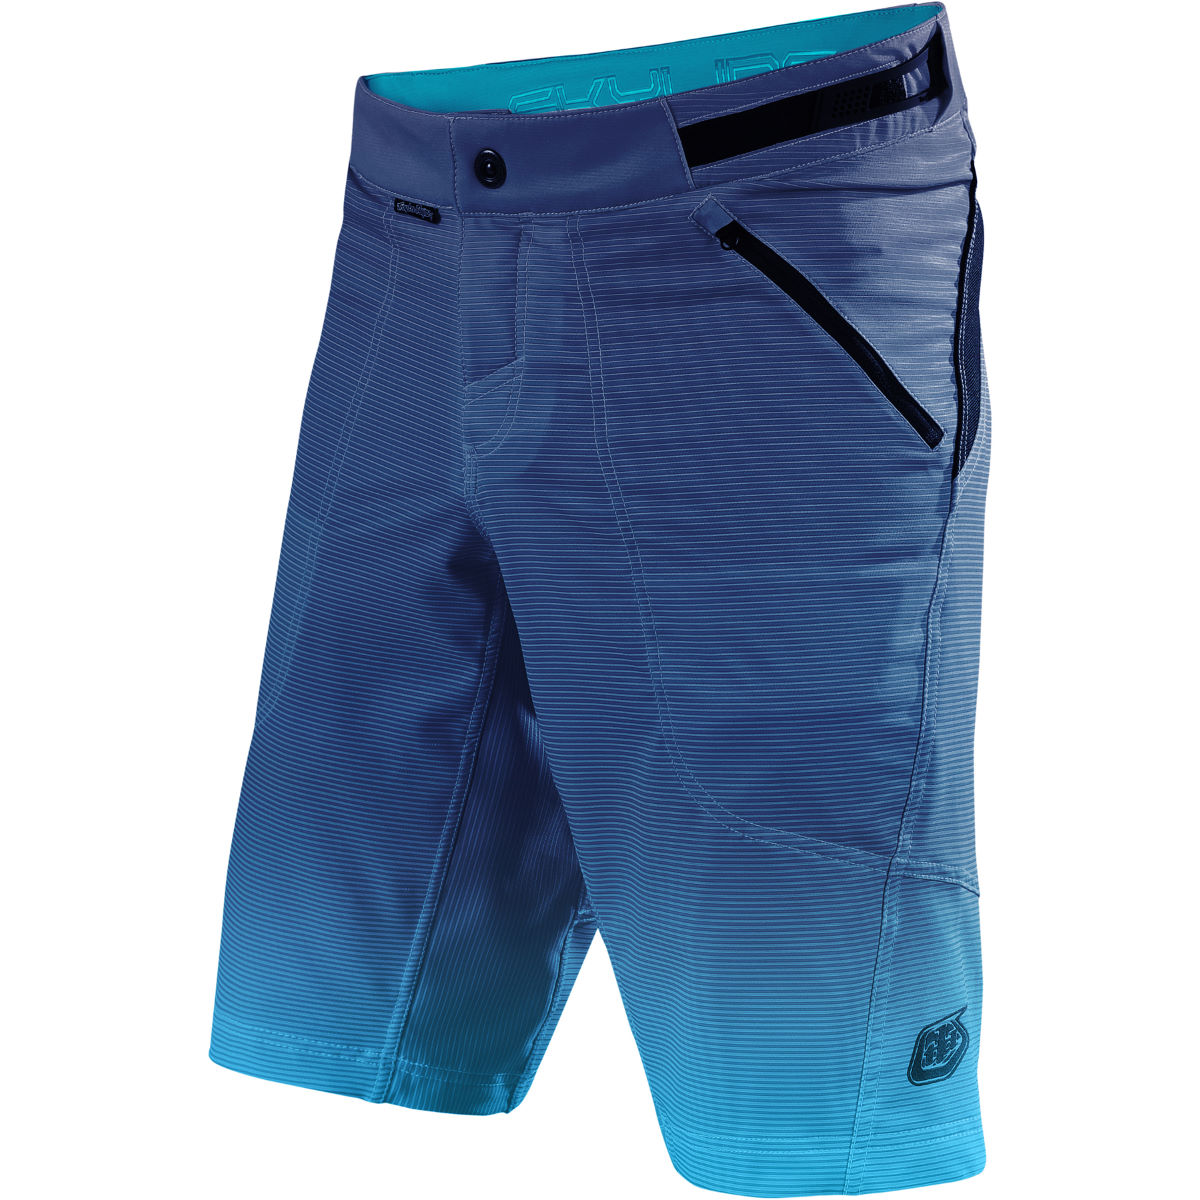 Short Troy Lee Designs Skyline Dissolve (bleu) - 30 Dissolve Blue Shorts VTT